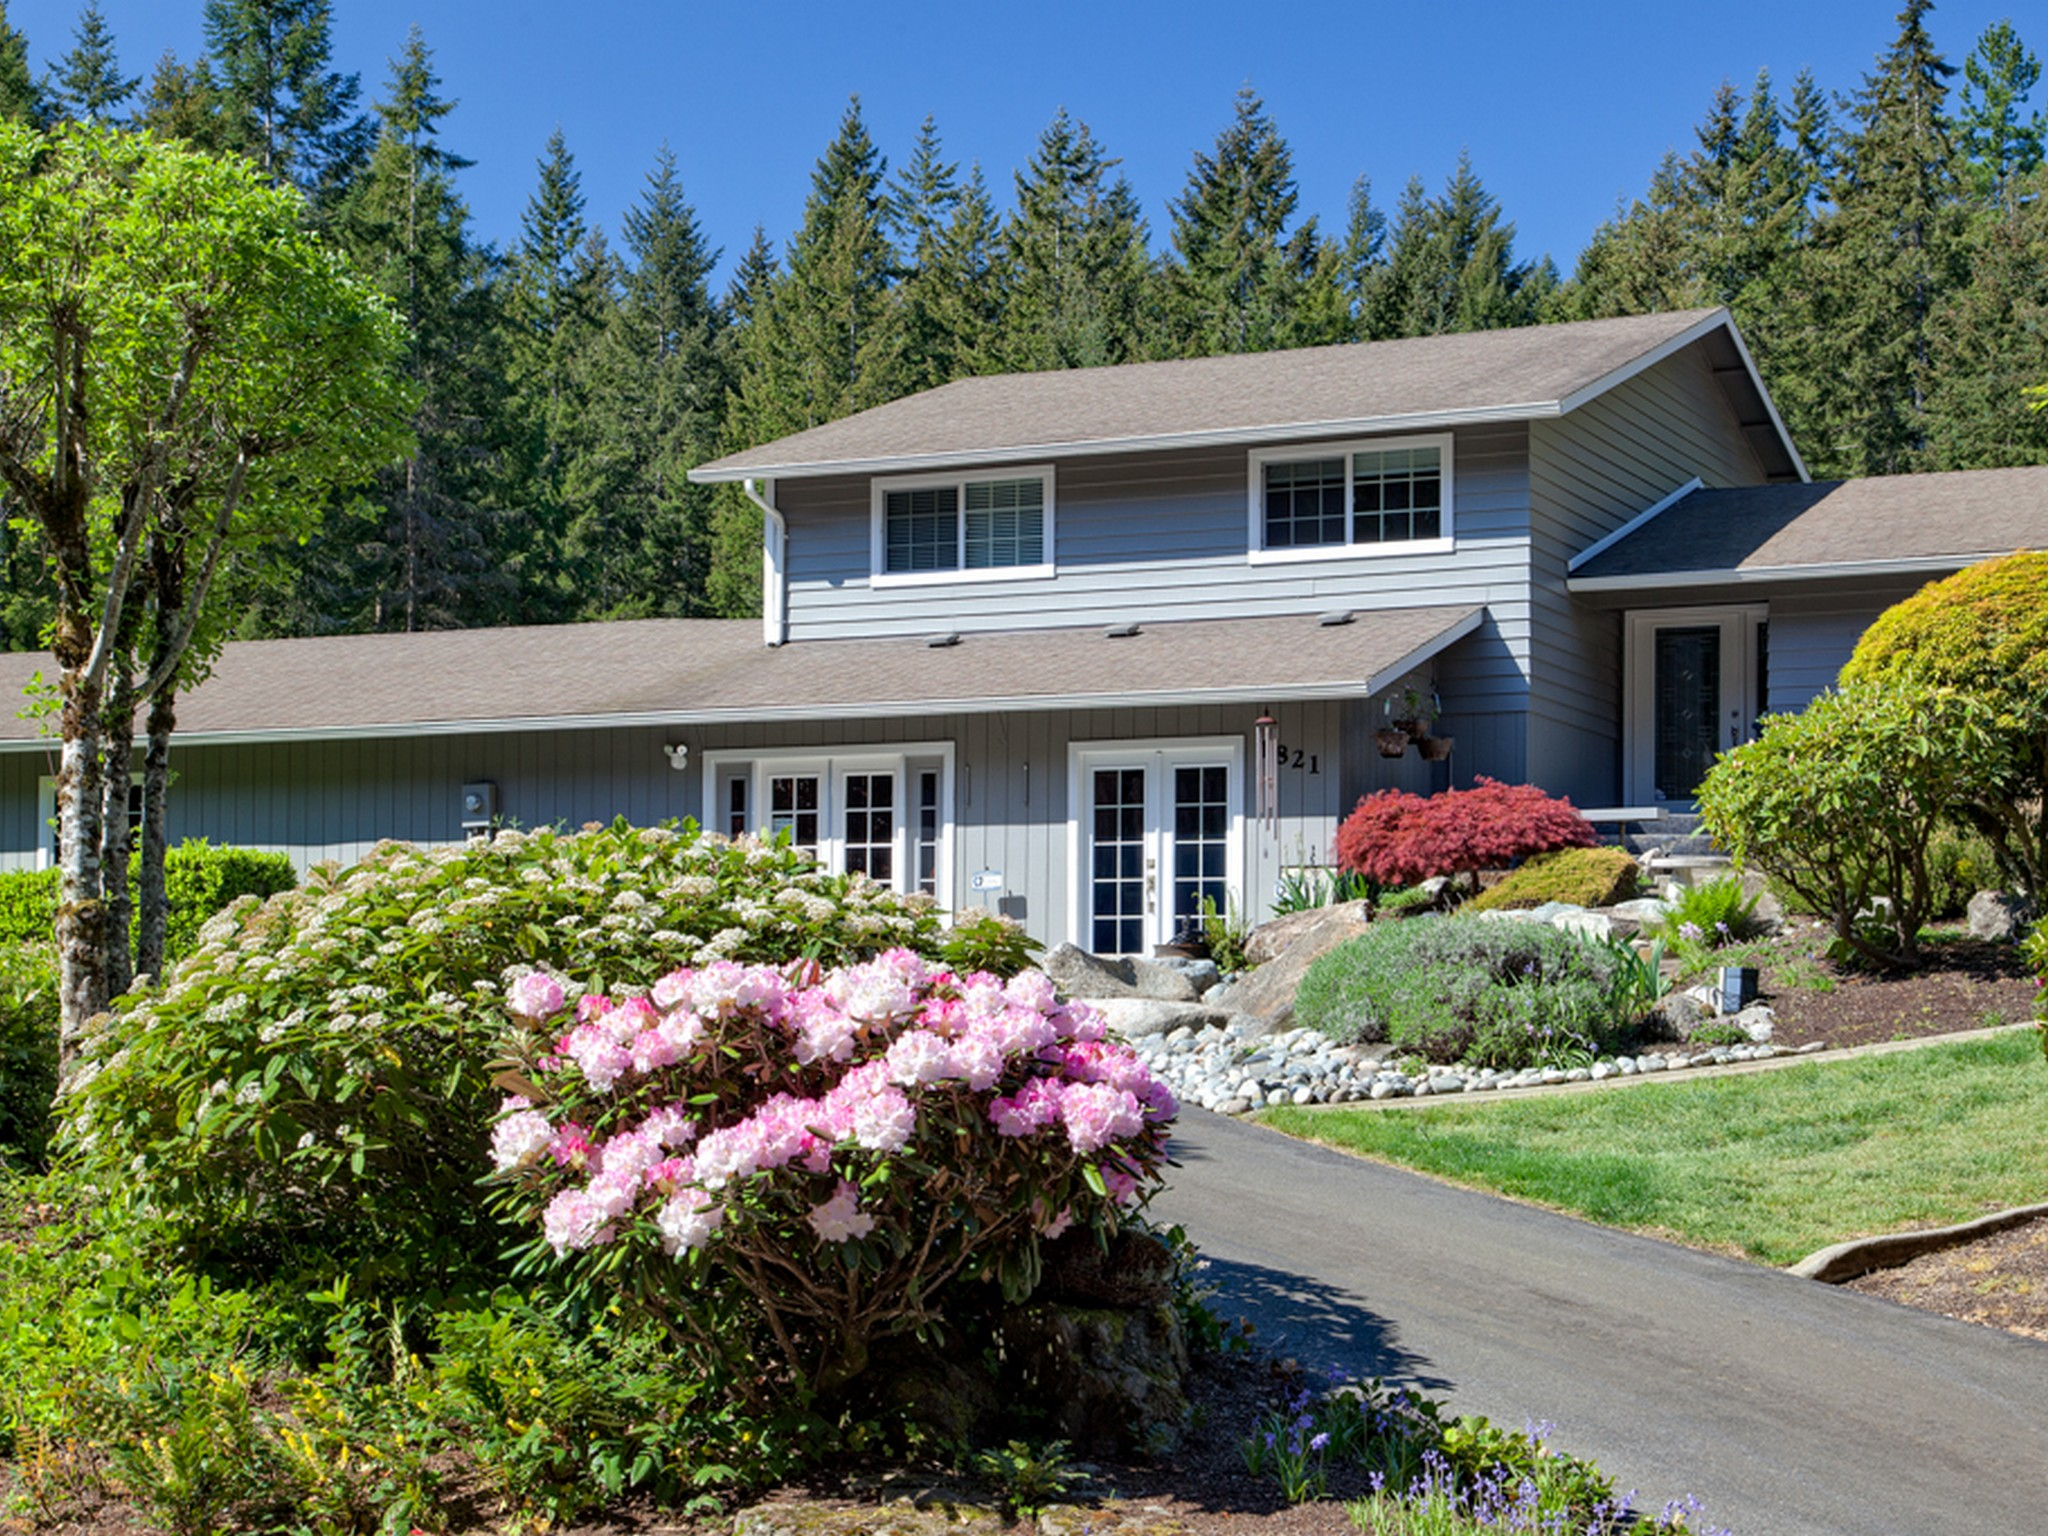 Single Family Home for Sale at Fabulous Remodeled Poulsbo Home 1826 NW Ponderosa Place Poulsbo, Washington 98370 United States